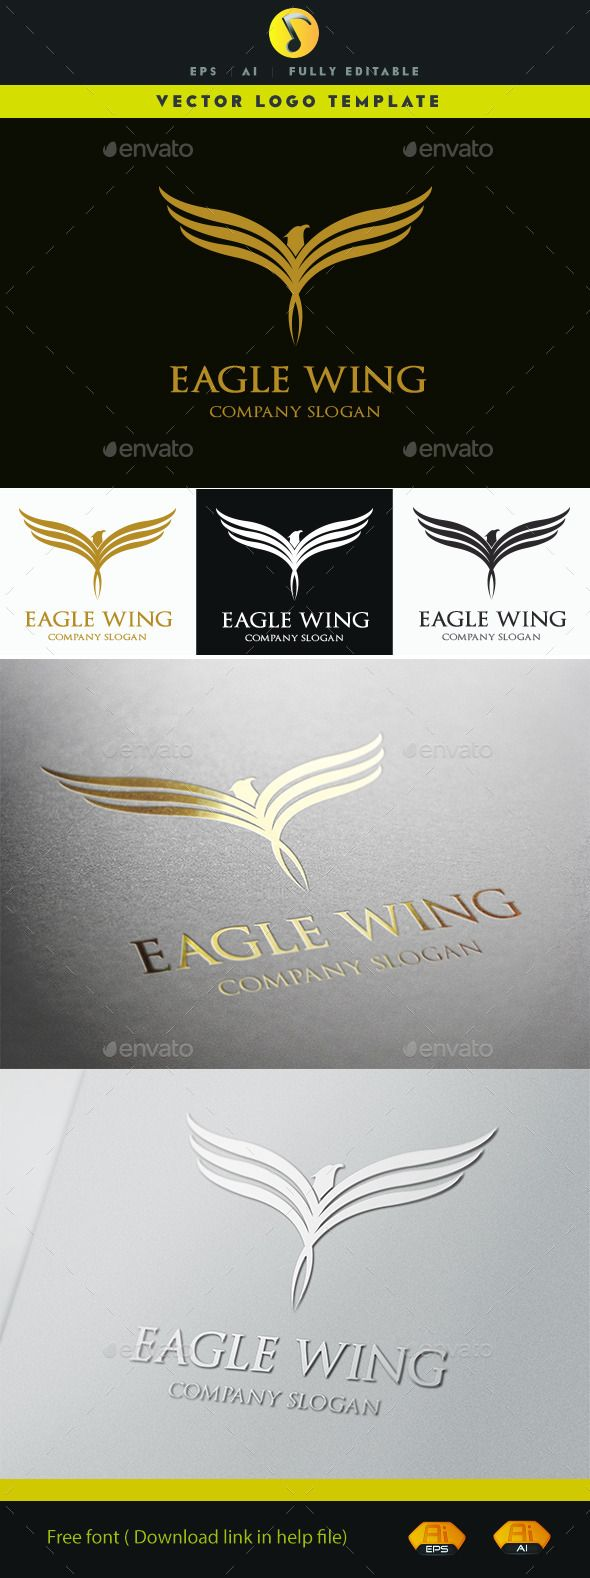 best ideas about wings logo logo inspiration eagle wing